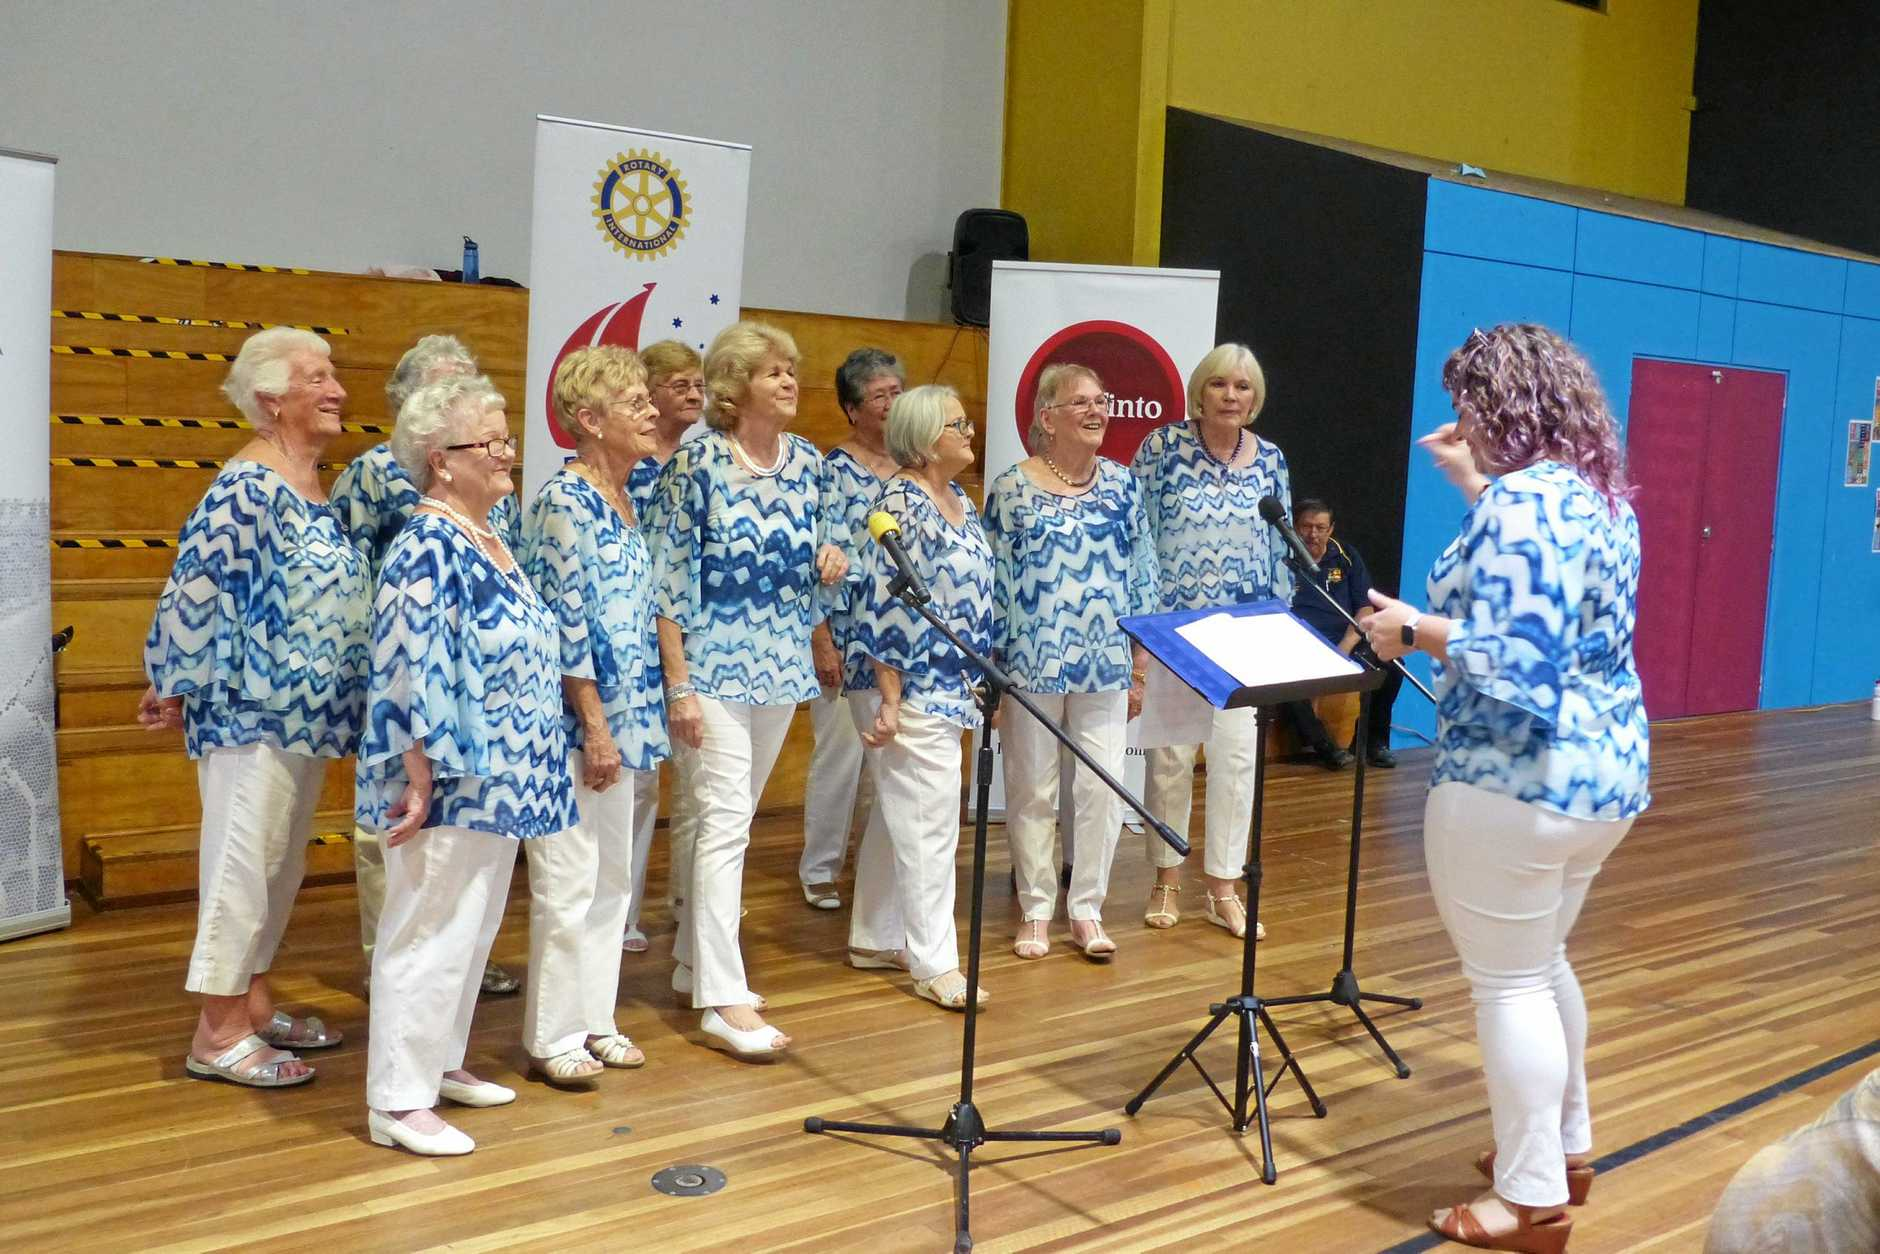 The Gladstone Musical Society entertained the crowd at the Rotary Club of South Gladstone's annual seniors dinner on Saturday night.